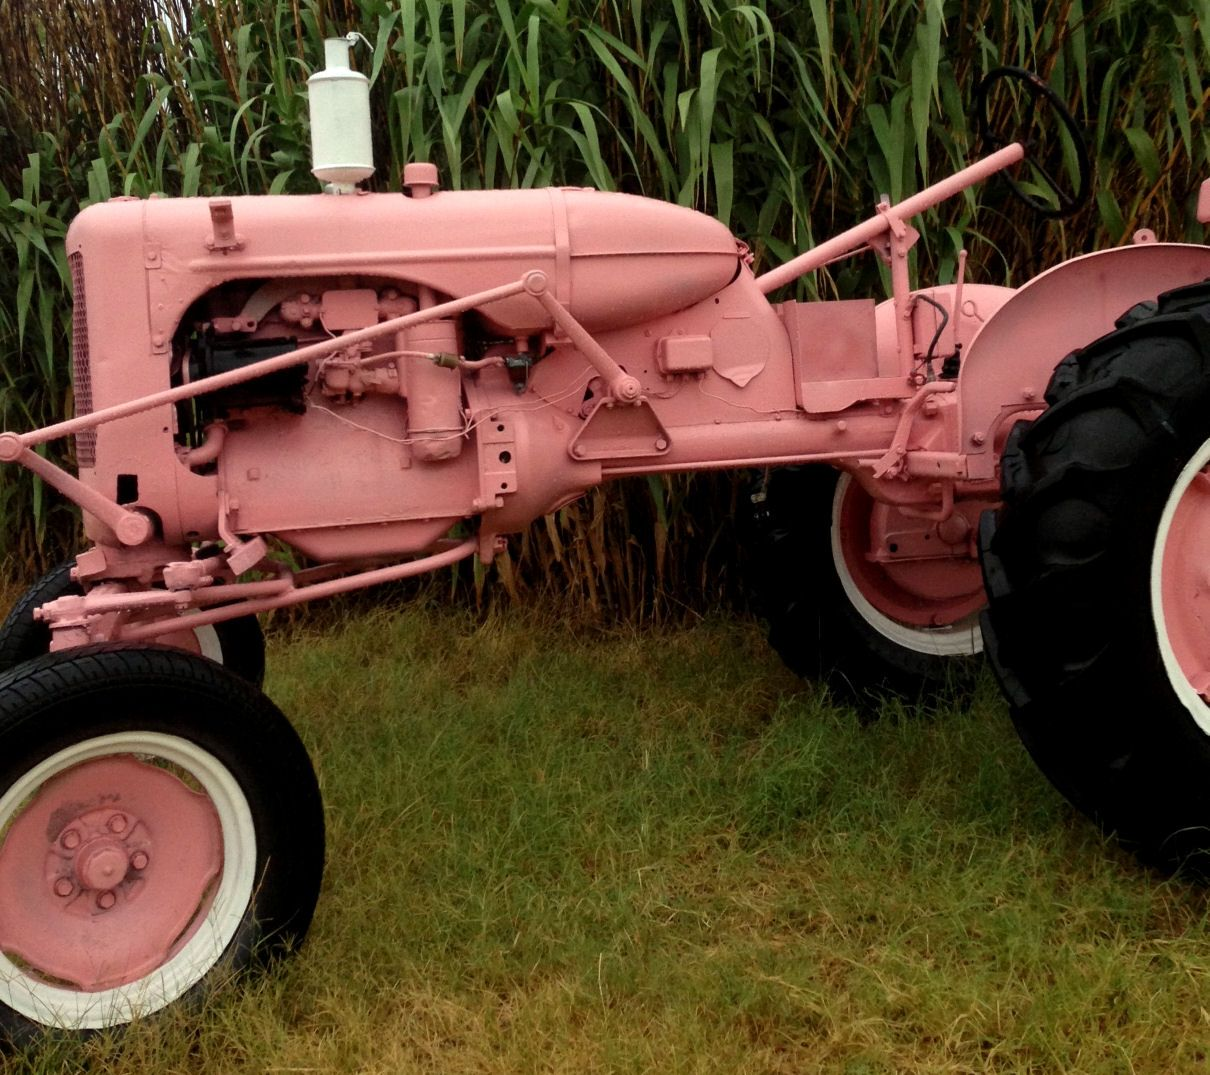 Our Pink Tractor @ Southern Jeweled / Lori Horton!